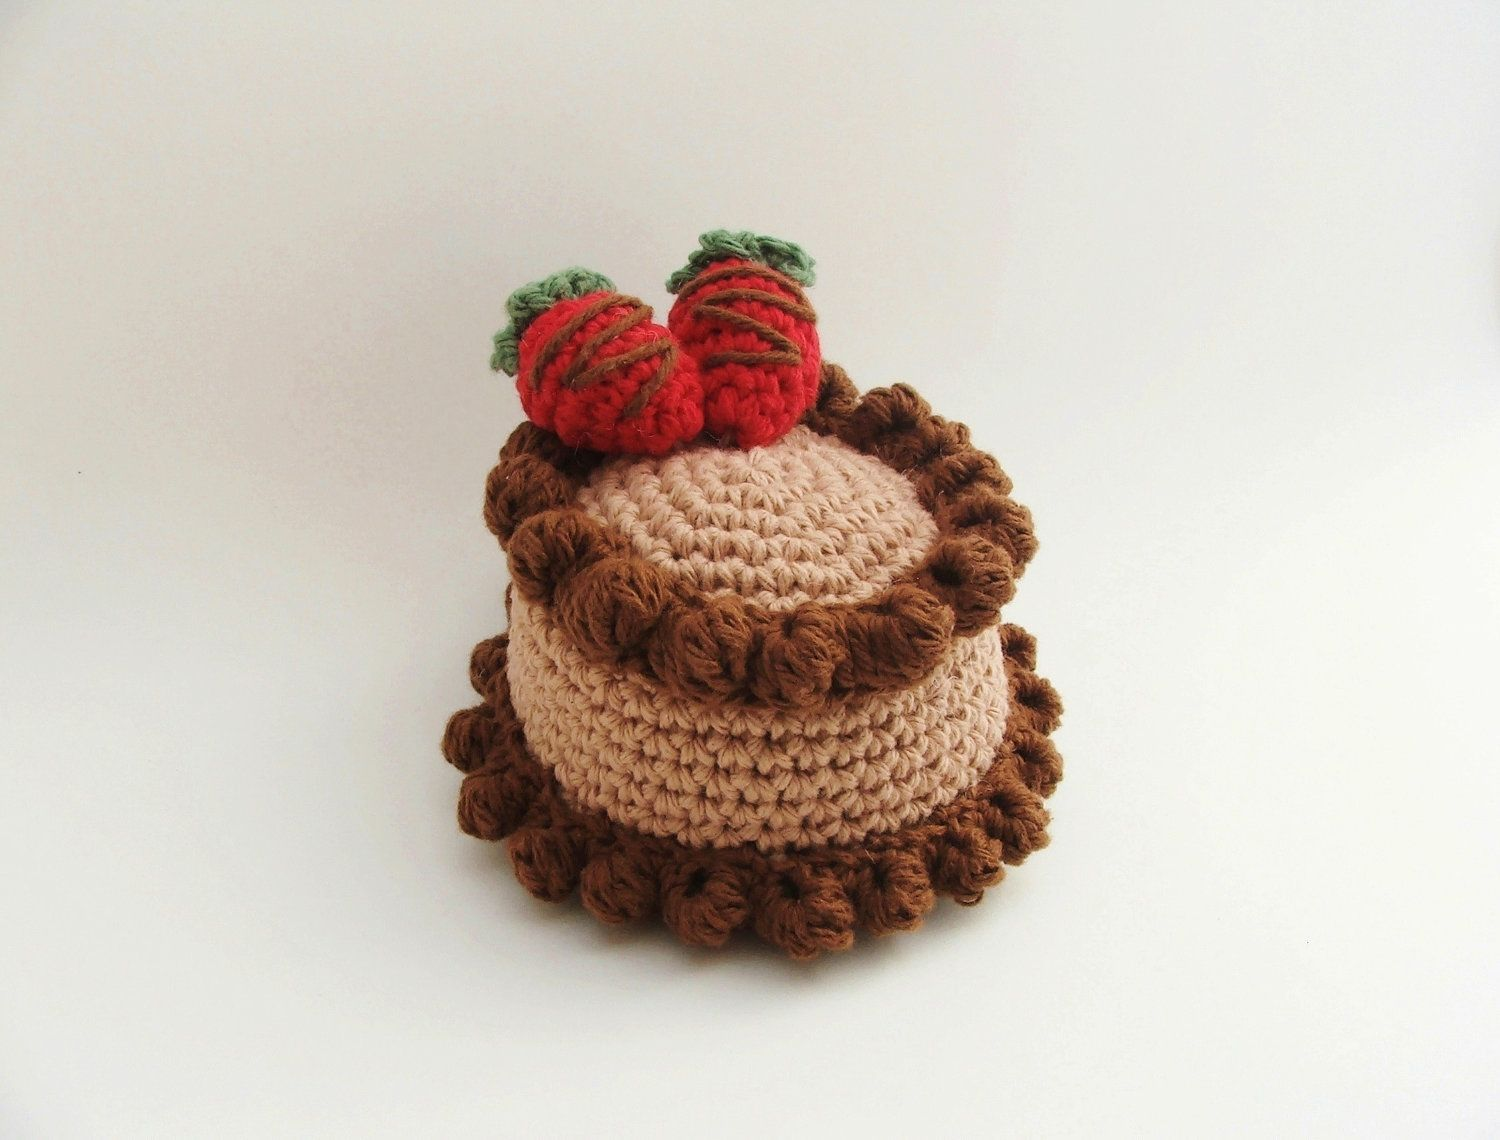 Easter gifts crochet cake amigurumi cake crochet food items similar to easter gifts crochet cake amigurumi cake crochet food chocolate cake amigurumi food birthday cake knitted food pet toys on negle Gallery